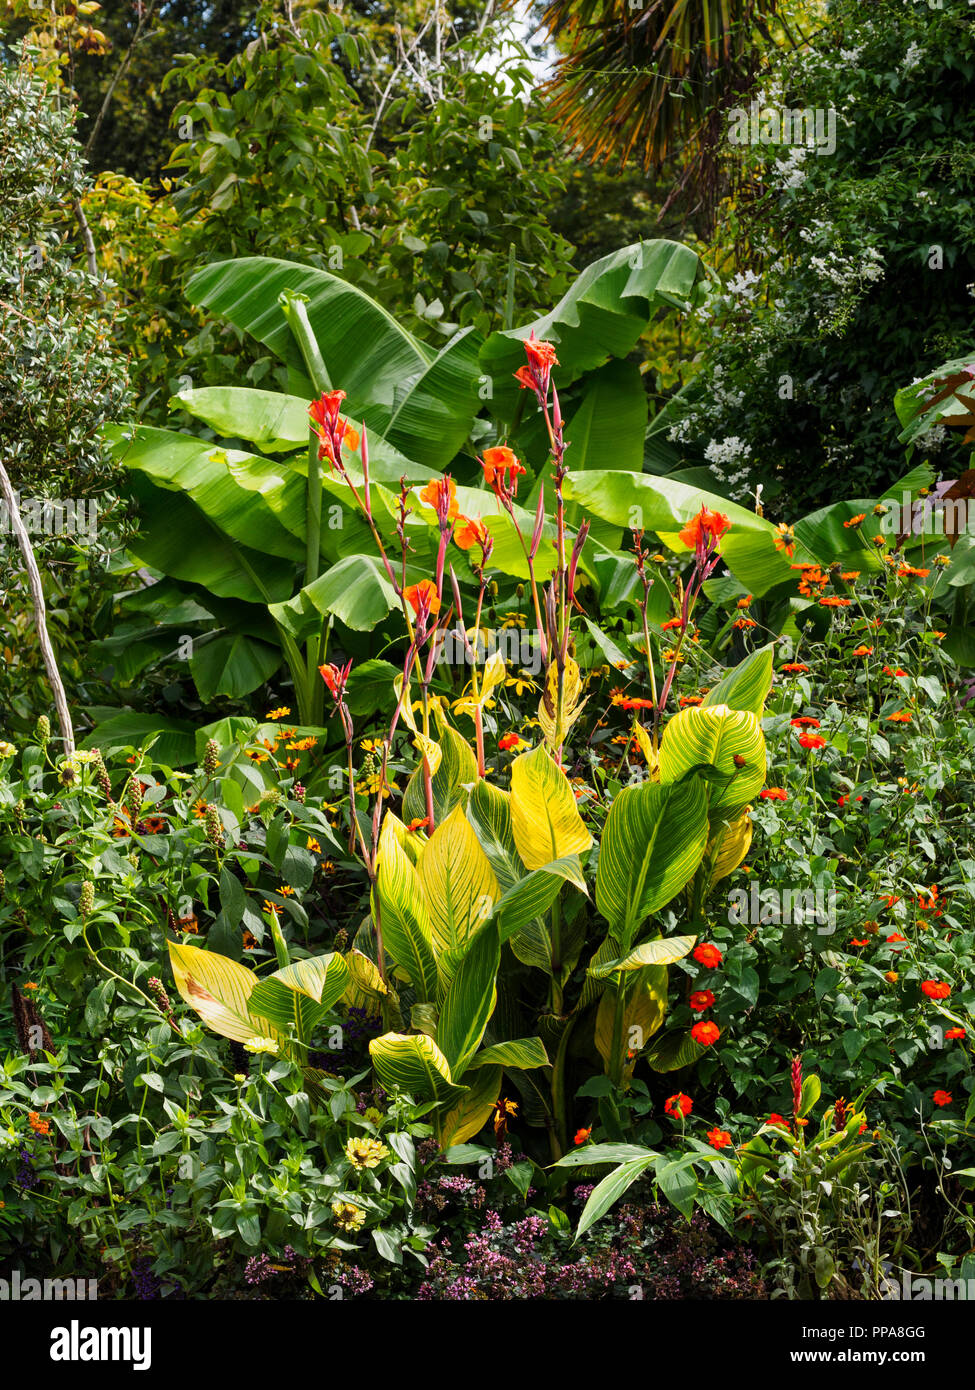 Broad leaves of the hardy banana, Musa basjoo, and yellow striped foliage of Canna 'Pretoria' dominate an exotic border planting - Stock Image